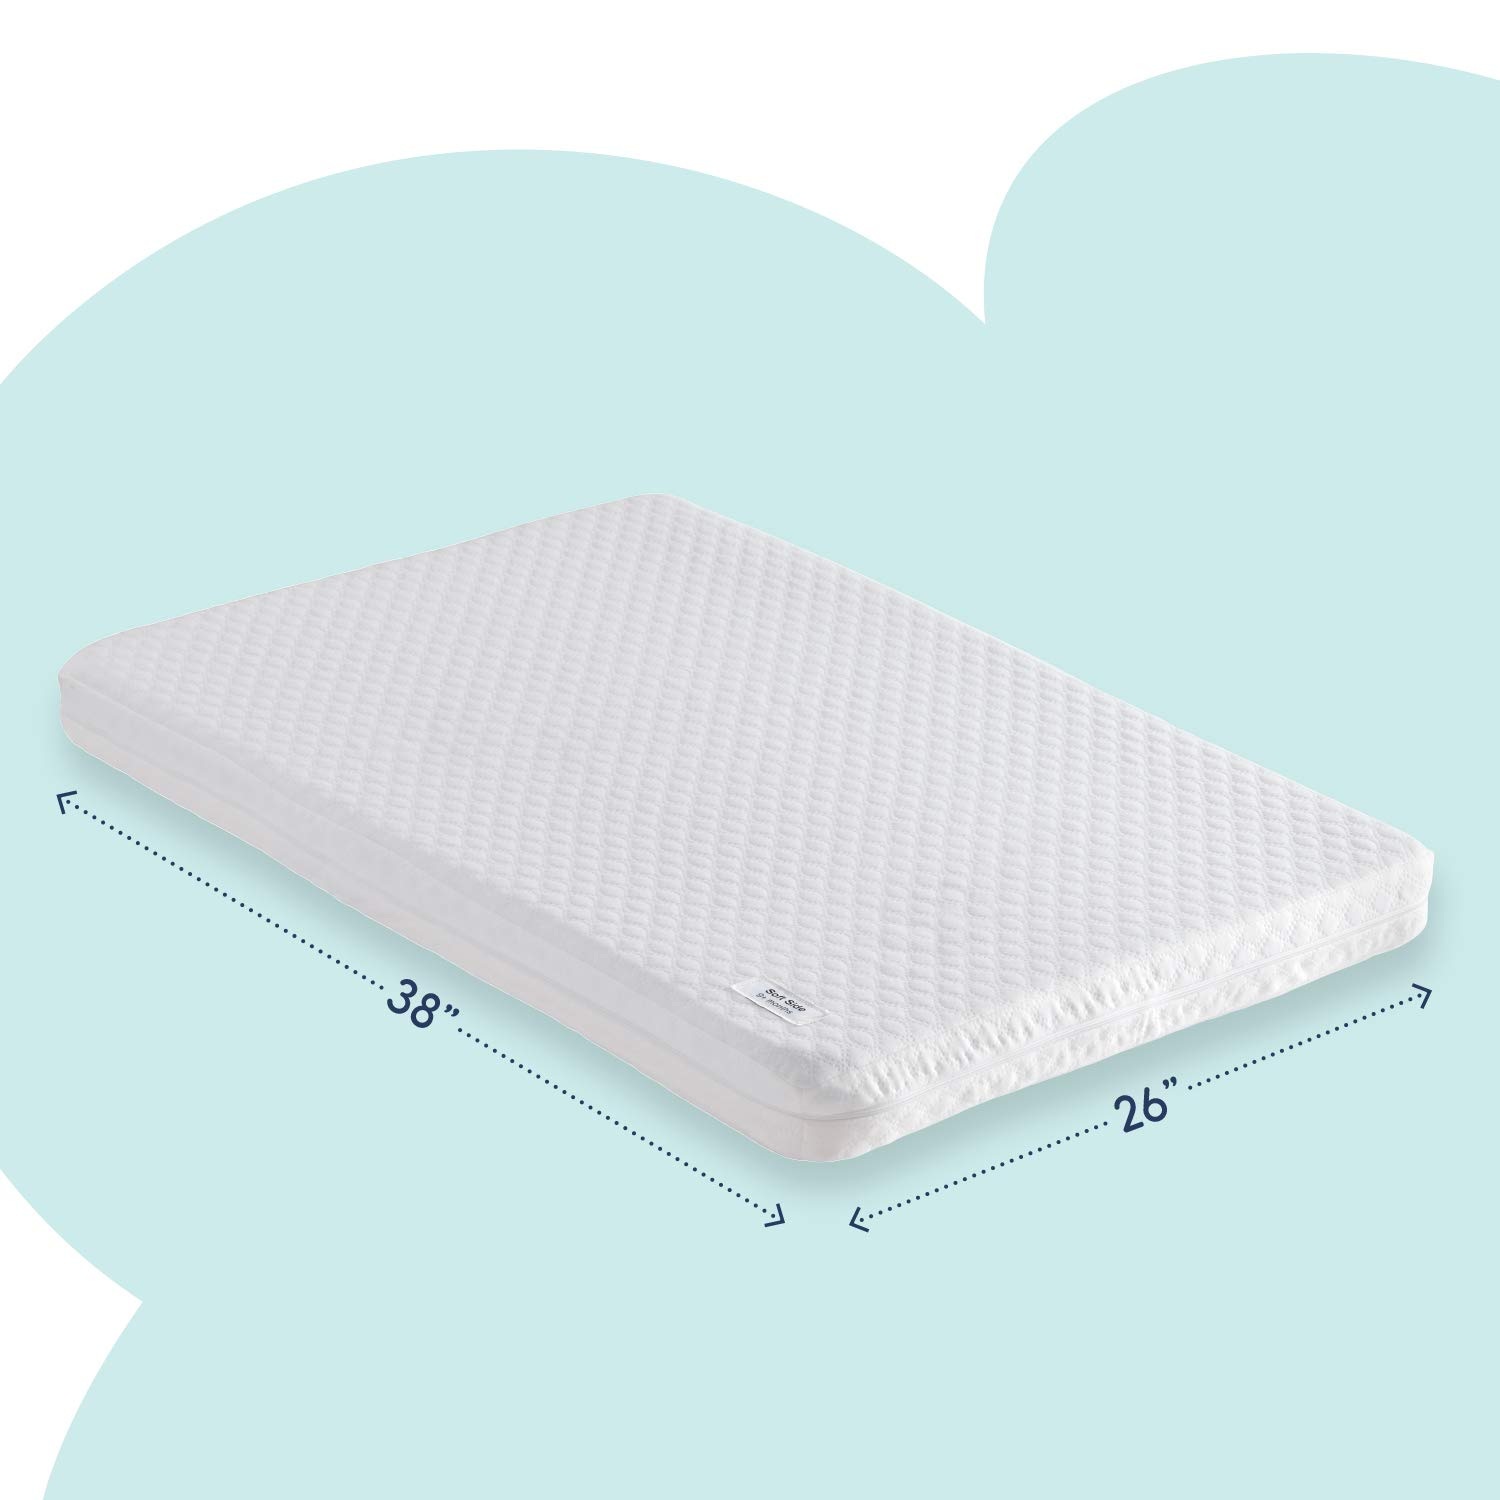 Pack n Play Mattress Pad [Dual Sided] with Firm Side (for Babies) & Soft Memory Foam Side (for Toddlers) | Memory Foam Pack and Play Mattress Pad | Play Yard Mattress for Pack and Play Playpen by hiccapop